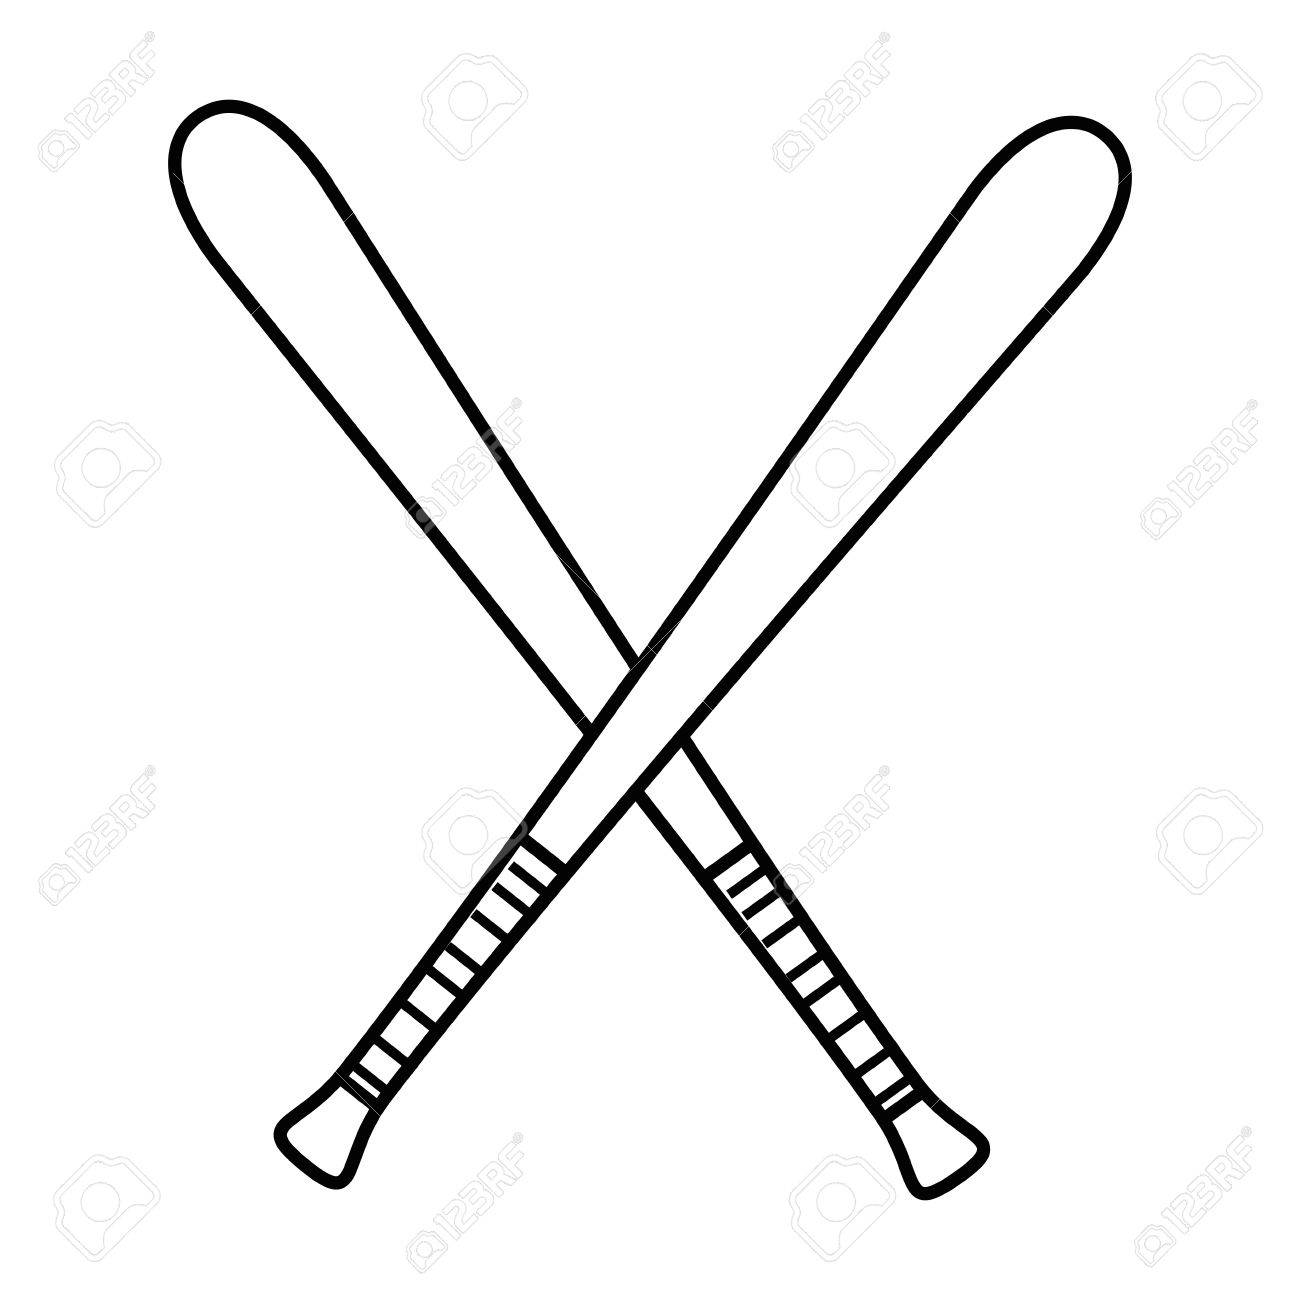 Baseball bat simple. Ball drawing free download